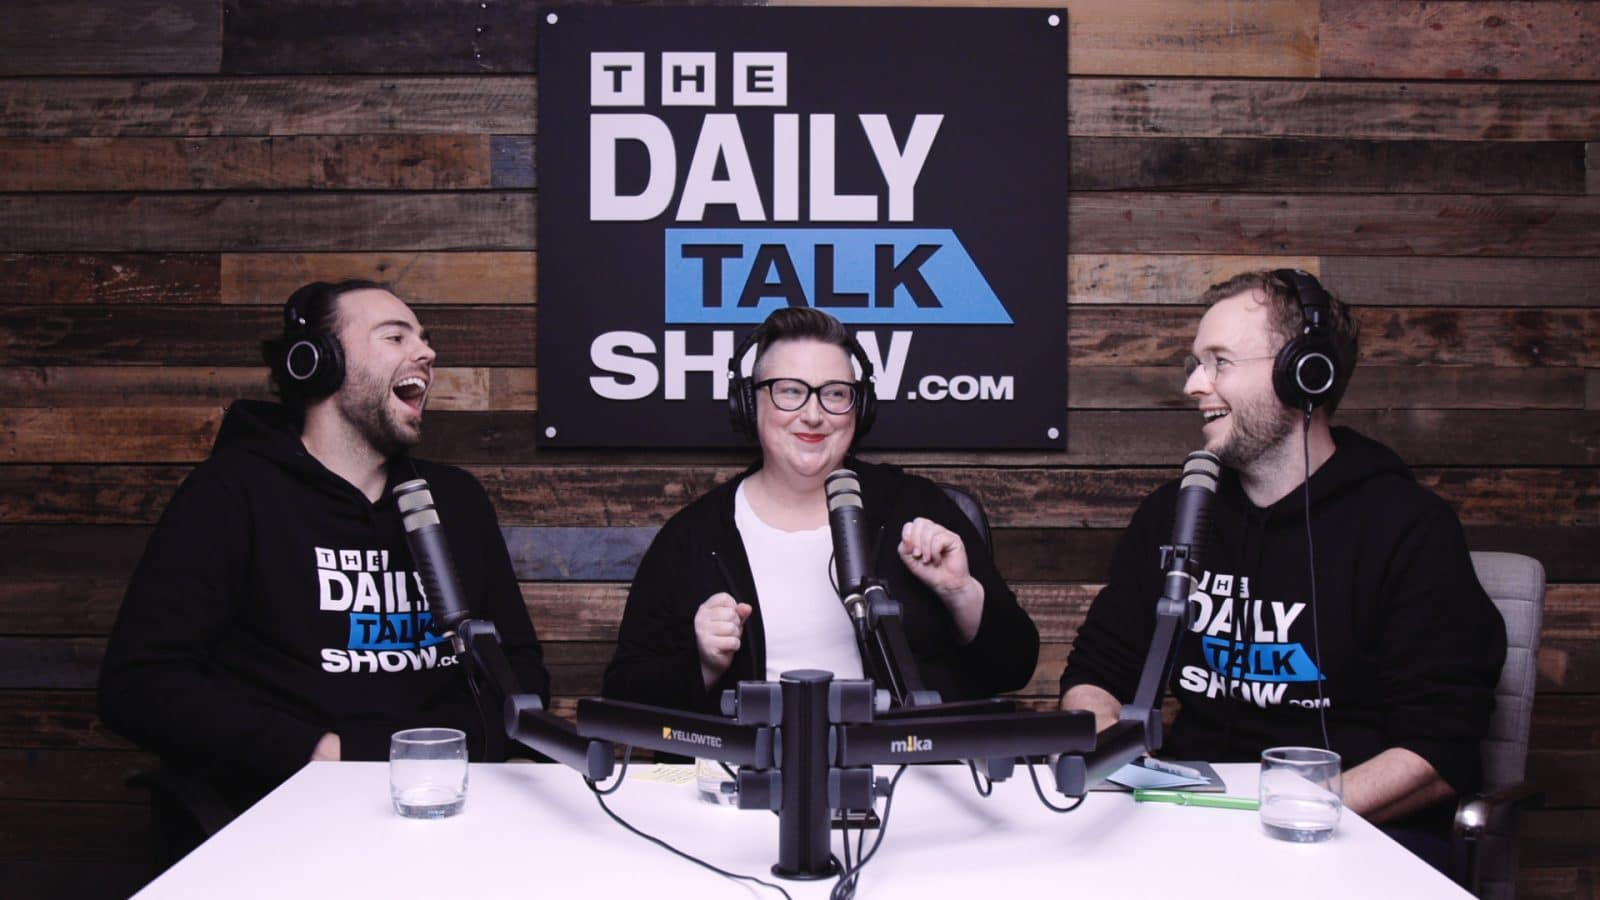 The-Daily-Talk-Show-425